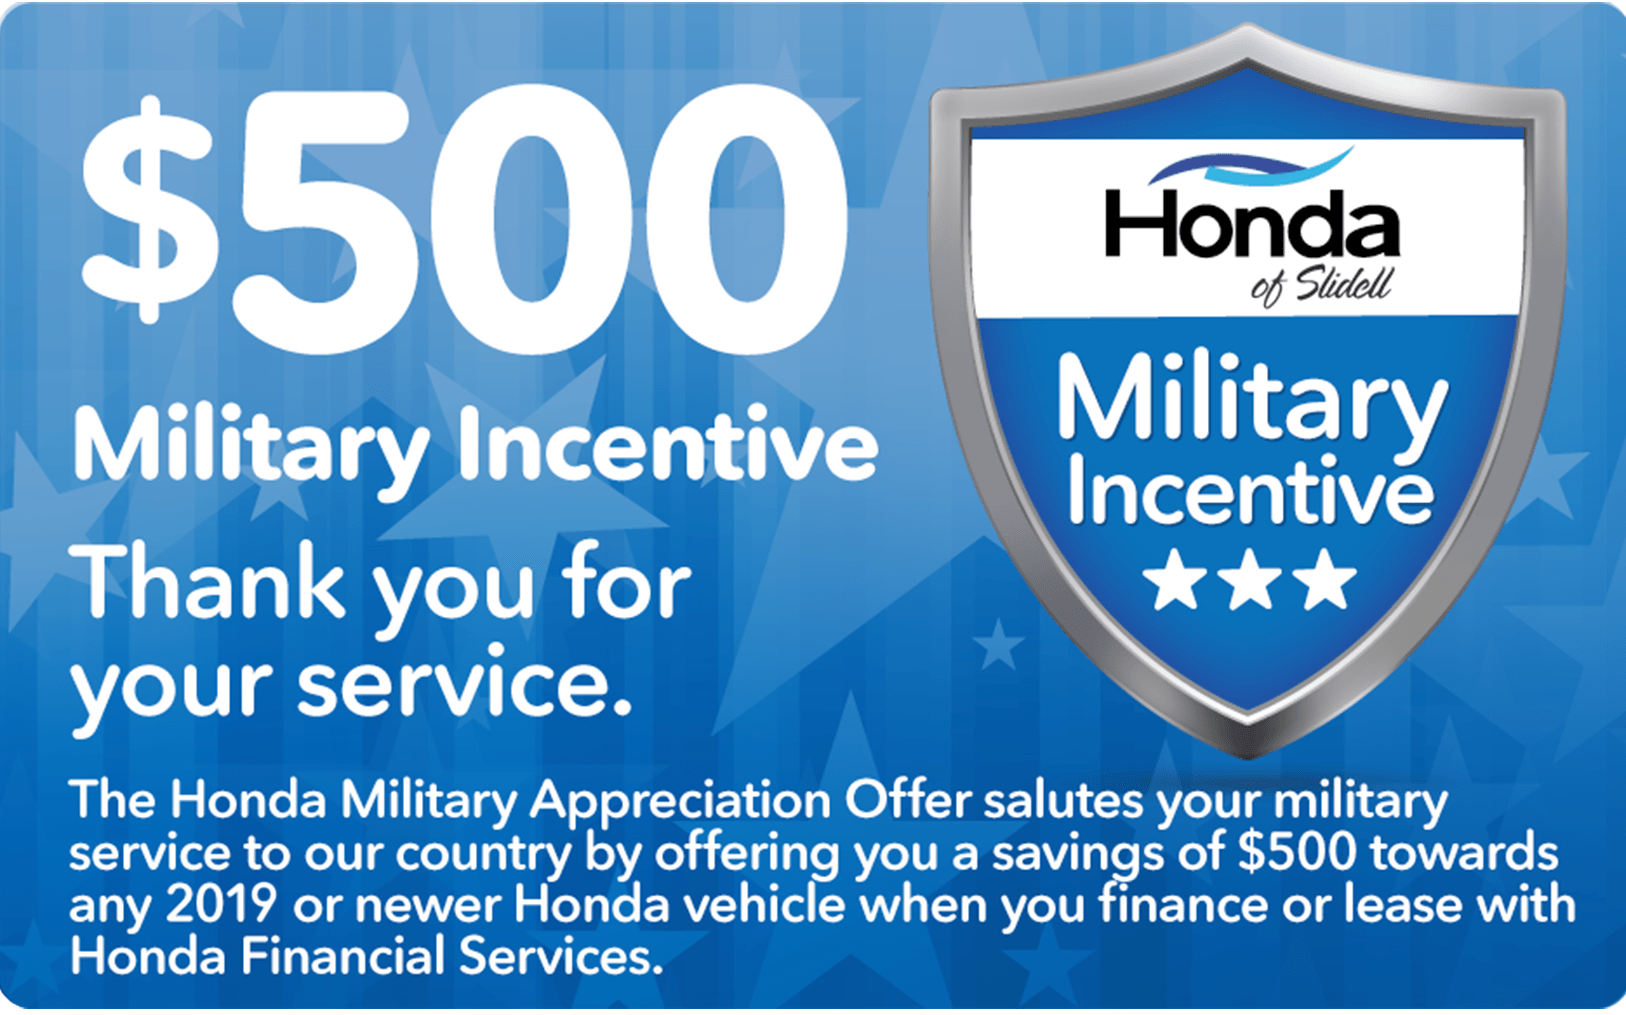 $500 Military Incentive Rebate Thank You For Your Service.